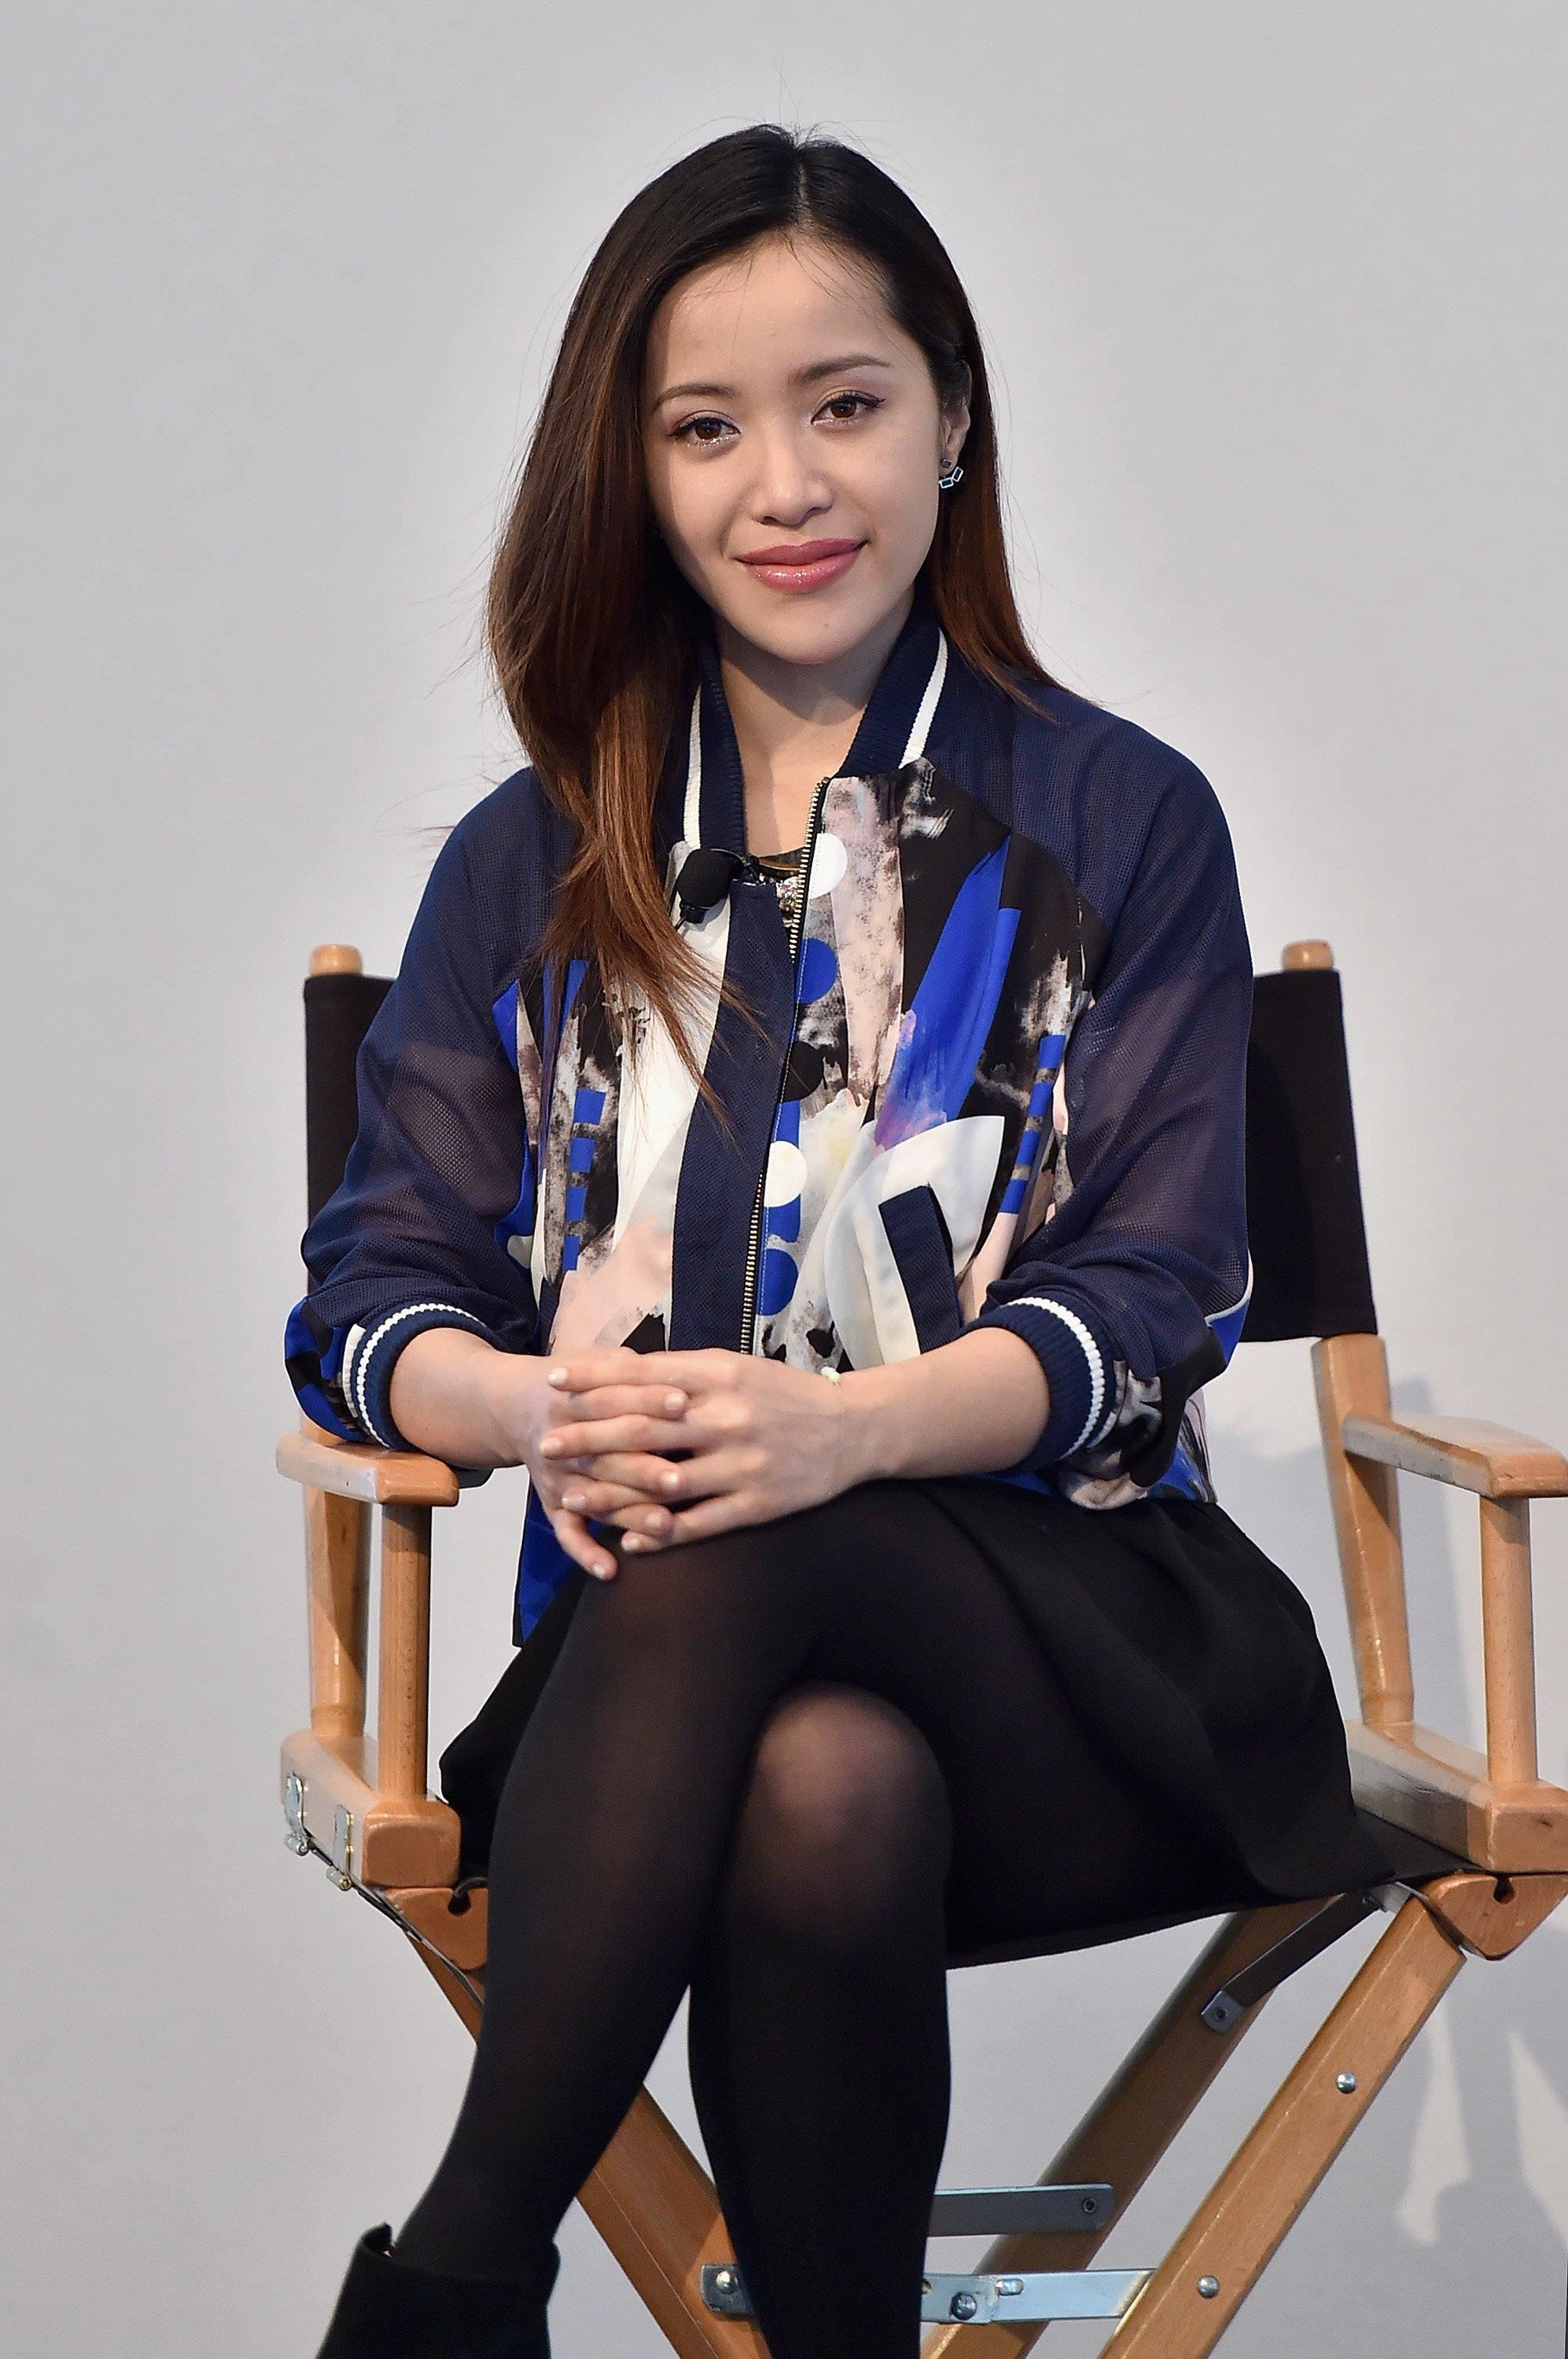 Michelle Phan's Online Video Network, ICON, Launches Today